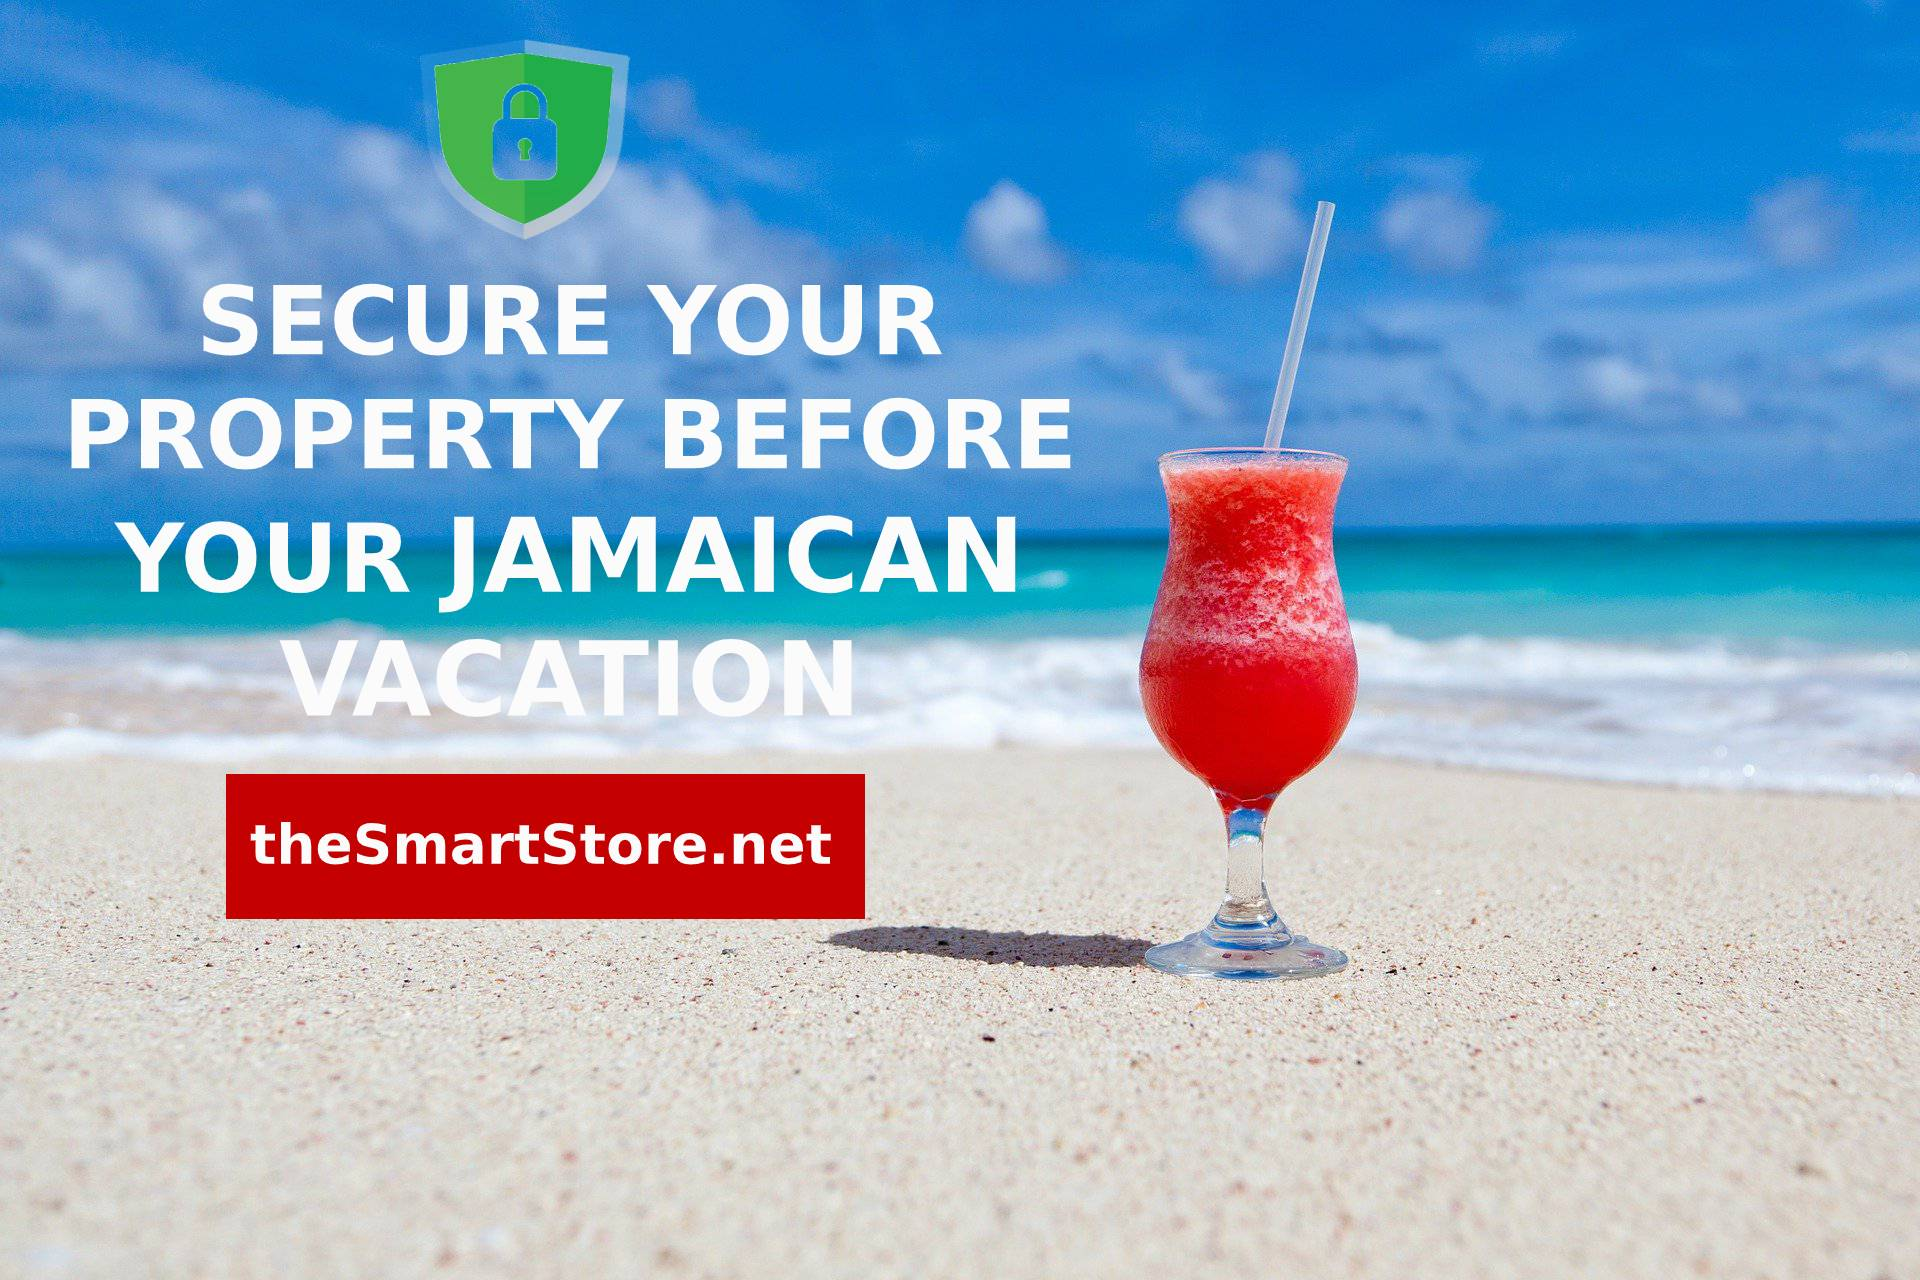 ISS Security Solutions Launches New Smart Security Monitoring Service For Homeowners and Airbnb Hosts - Opens New Office In Jamaica